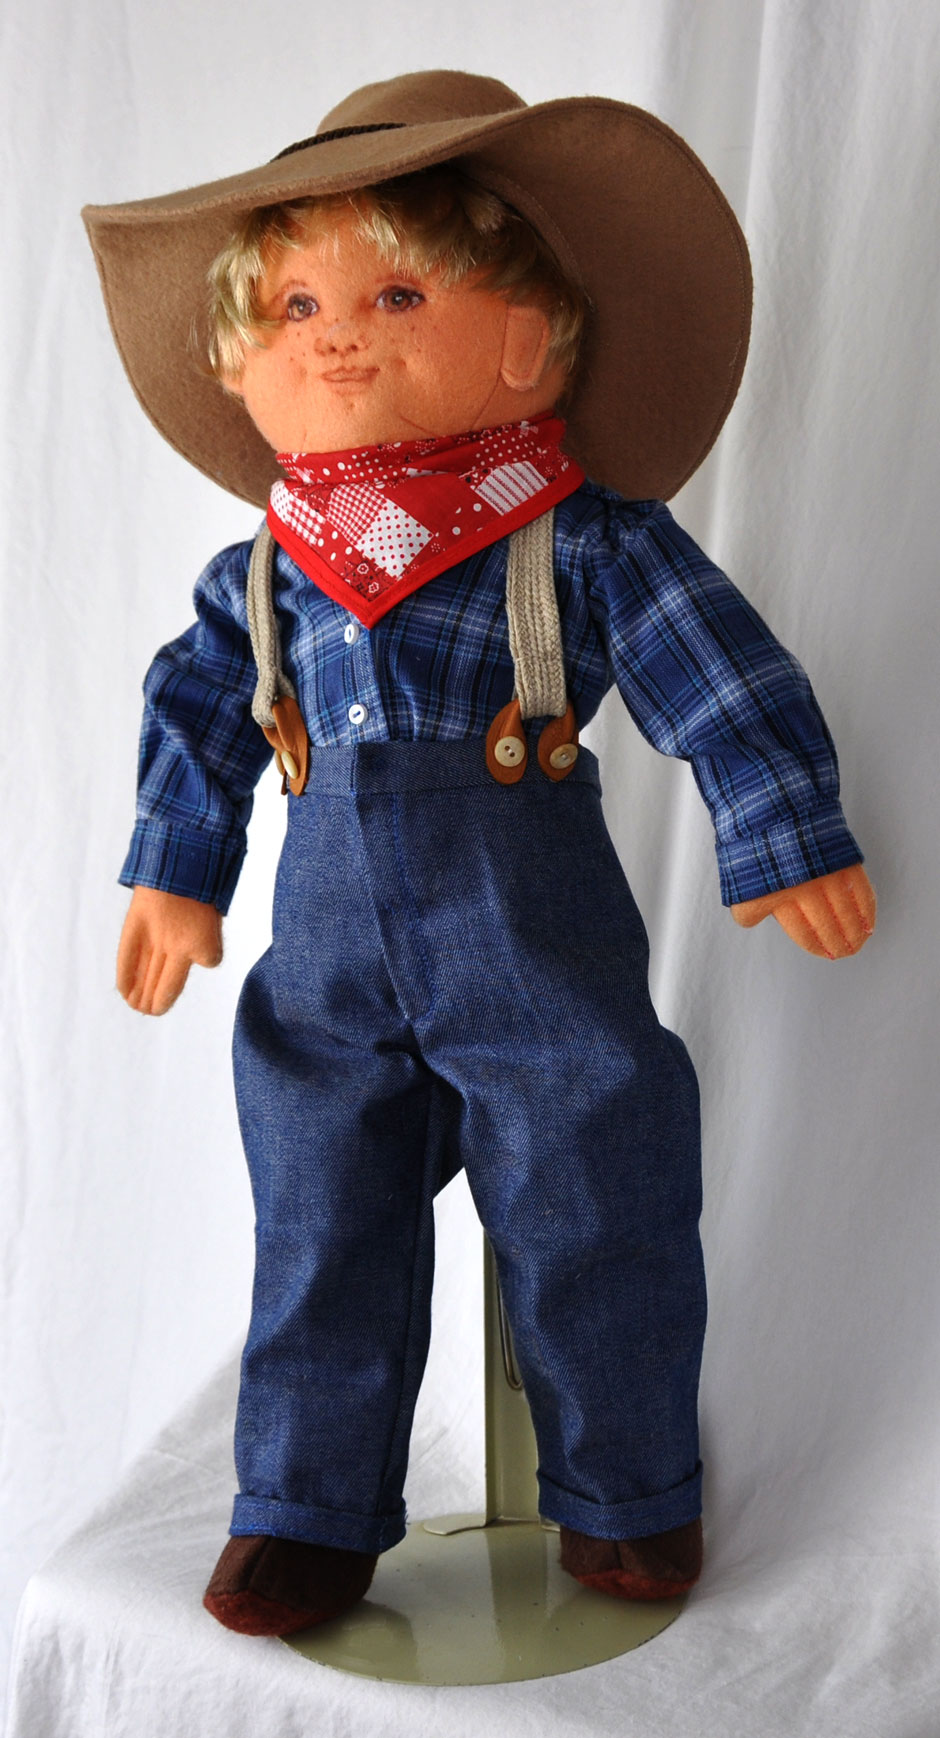 Country Cousin Boy Doll - Handmade Dolls Online